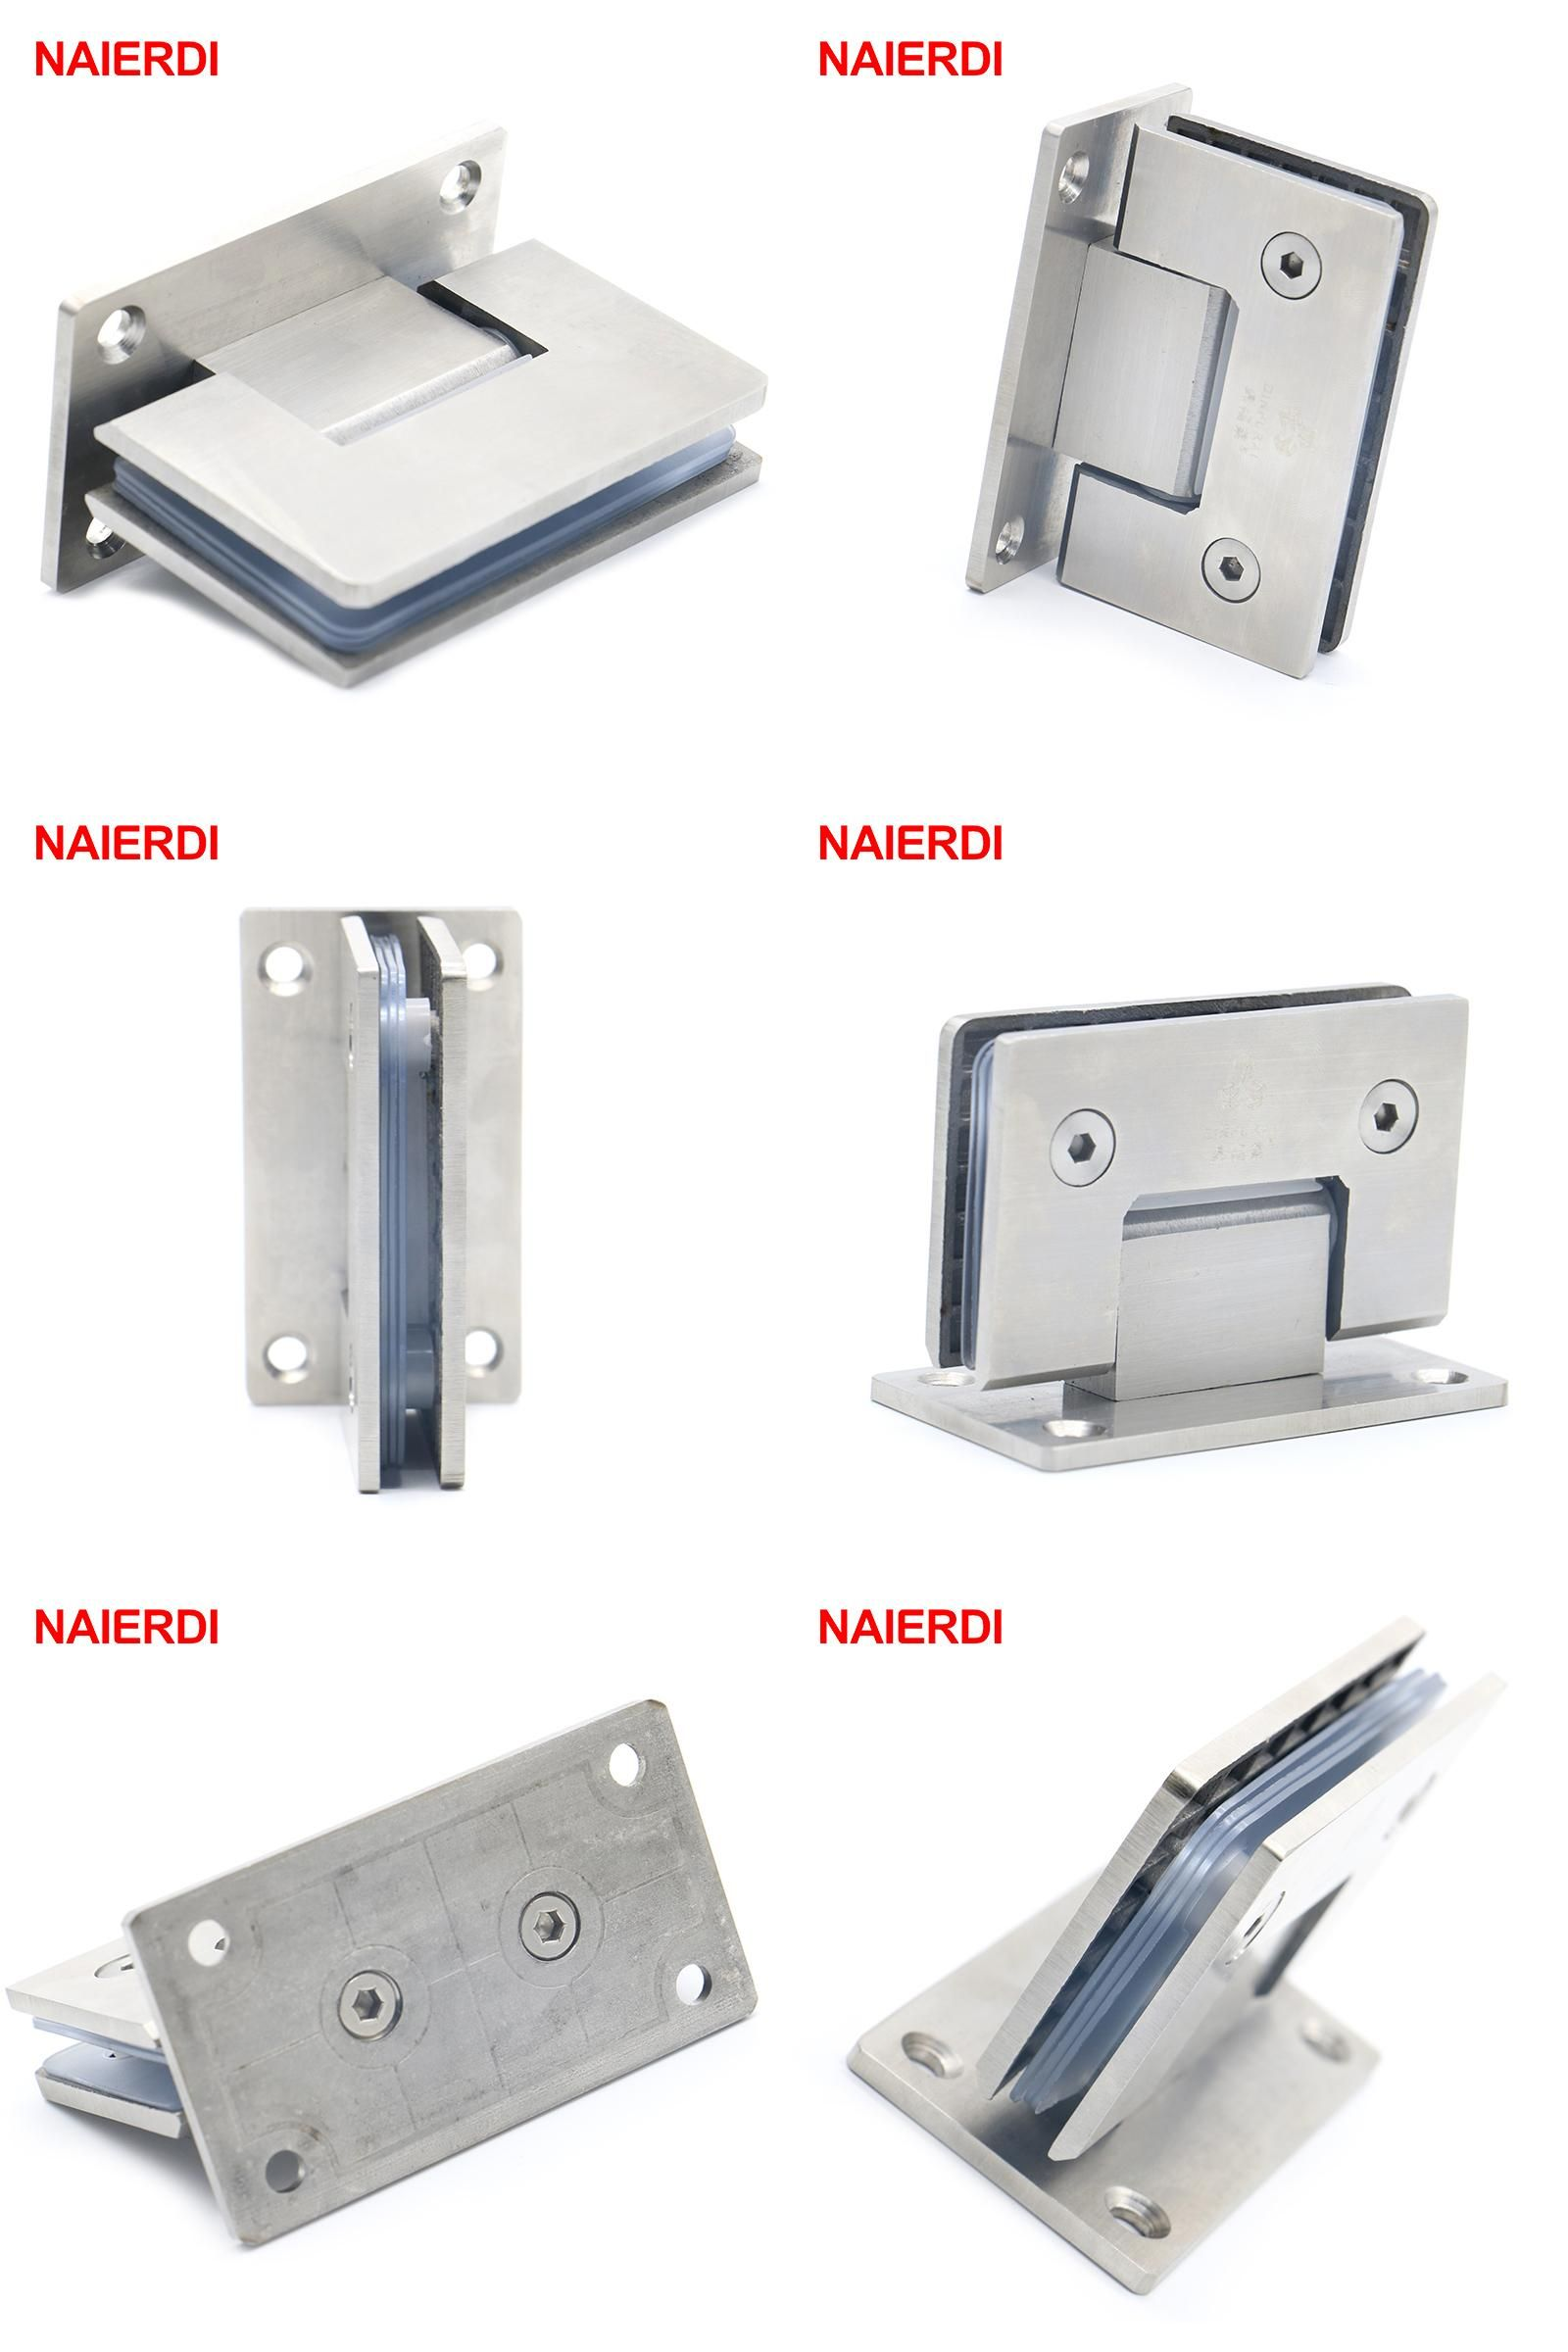 Visit To Buy 2pcs Naierdi 4913 90 Degree Open 304 Stainless Steel Wall Mount Glass Shower Door Hinge For Home With Images Glass Shower Door Hinge Shower Doors Steel Wall